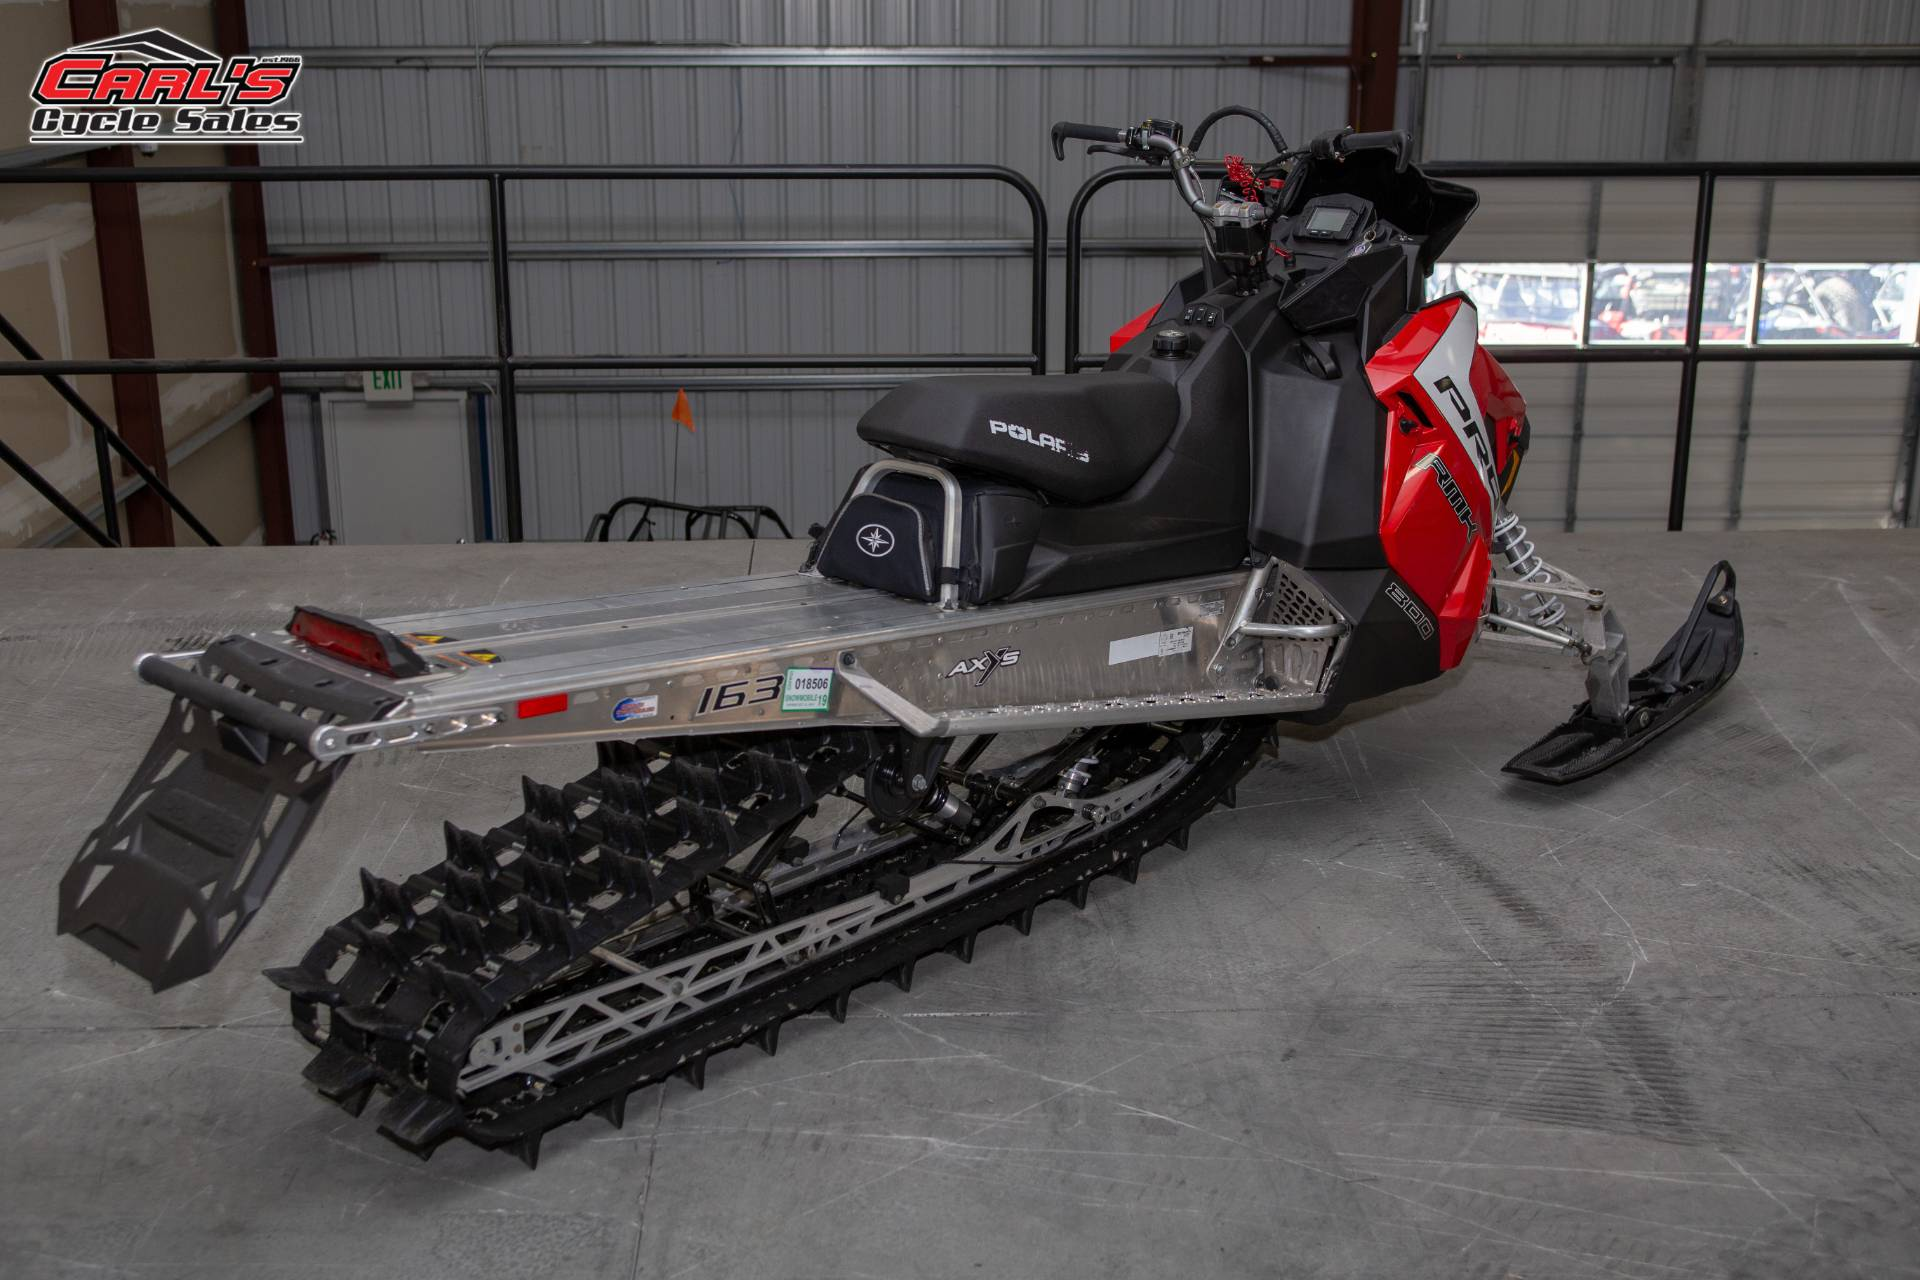 2016 Polaris 800 Pro-RMK 163 in Boise, Idaho - Photo 7